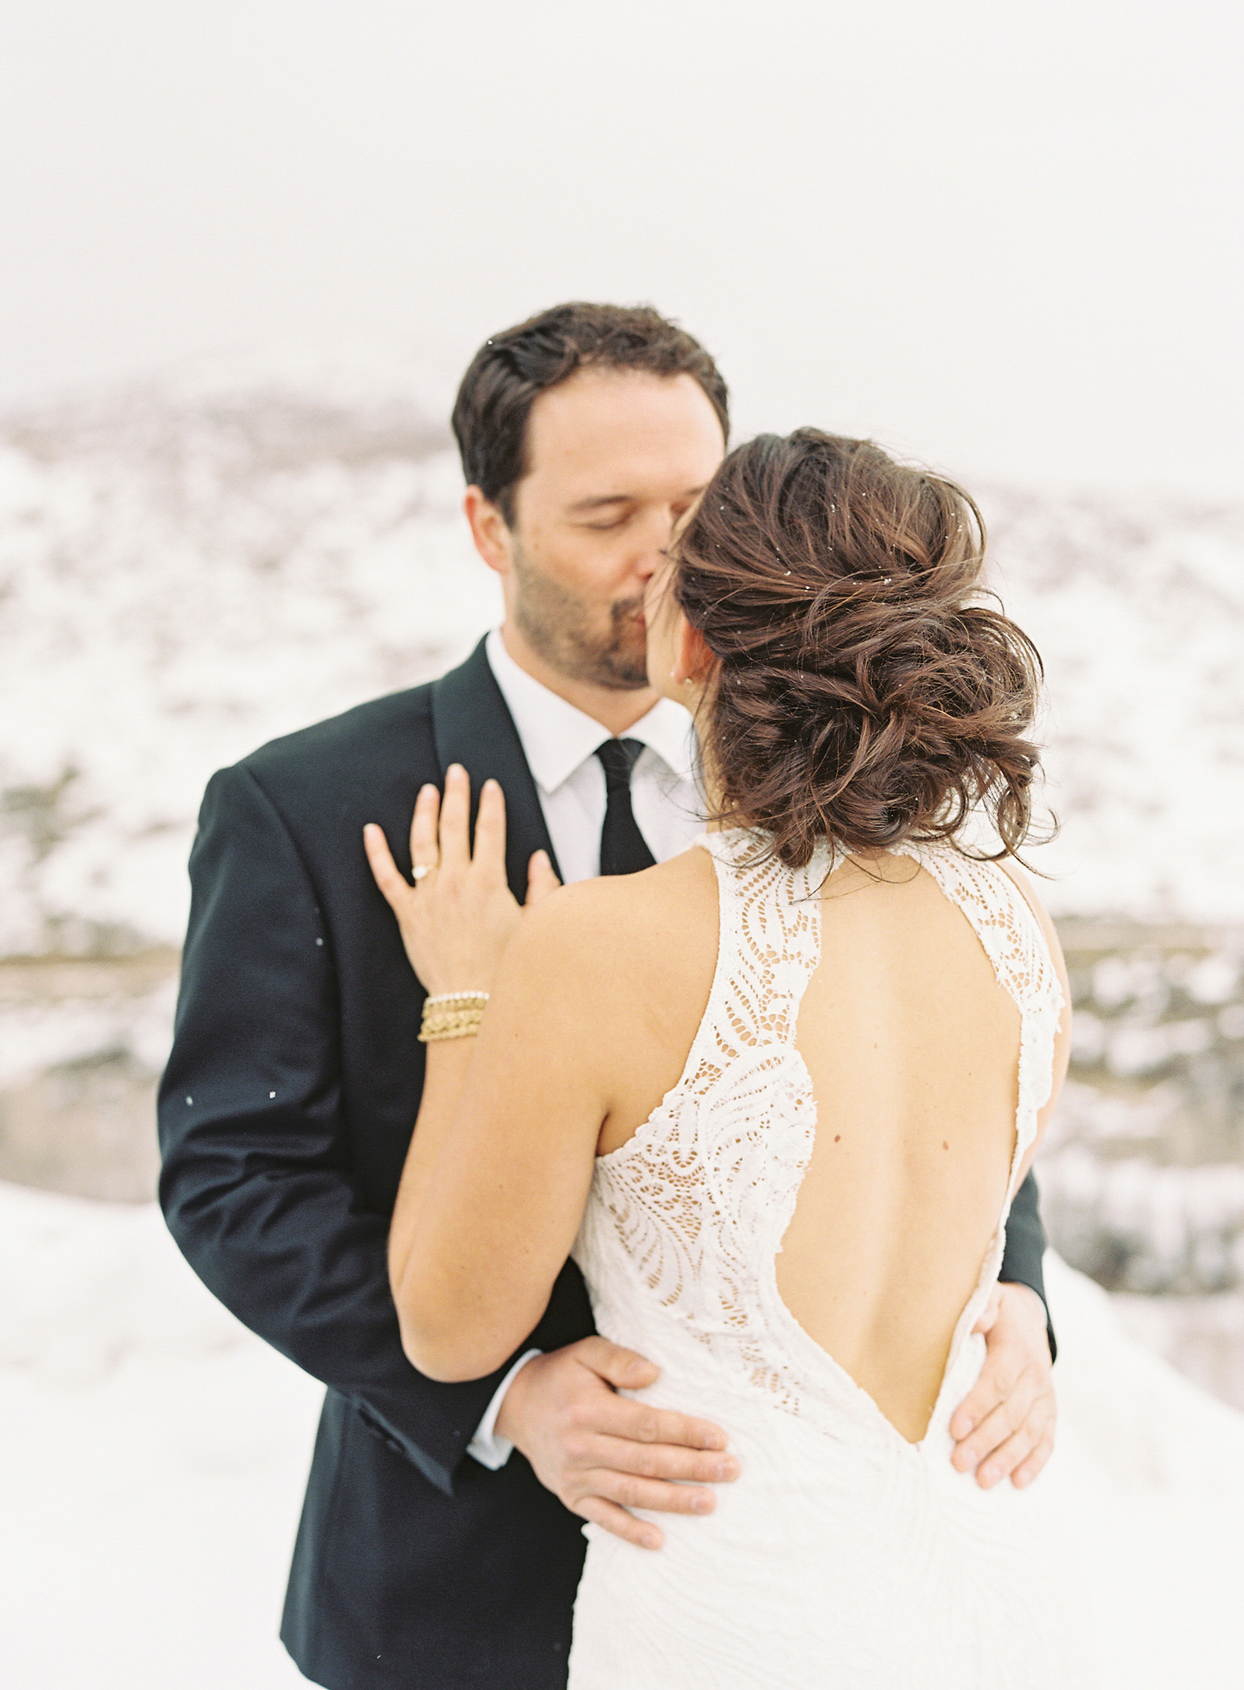 bride and groom hug while sharing a kiss outside in the snow